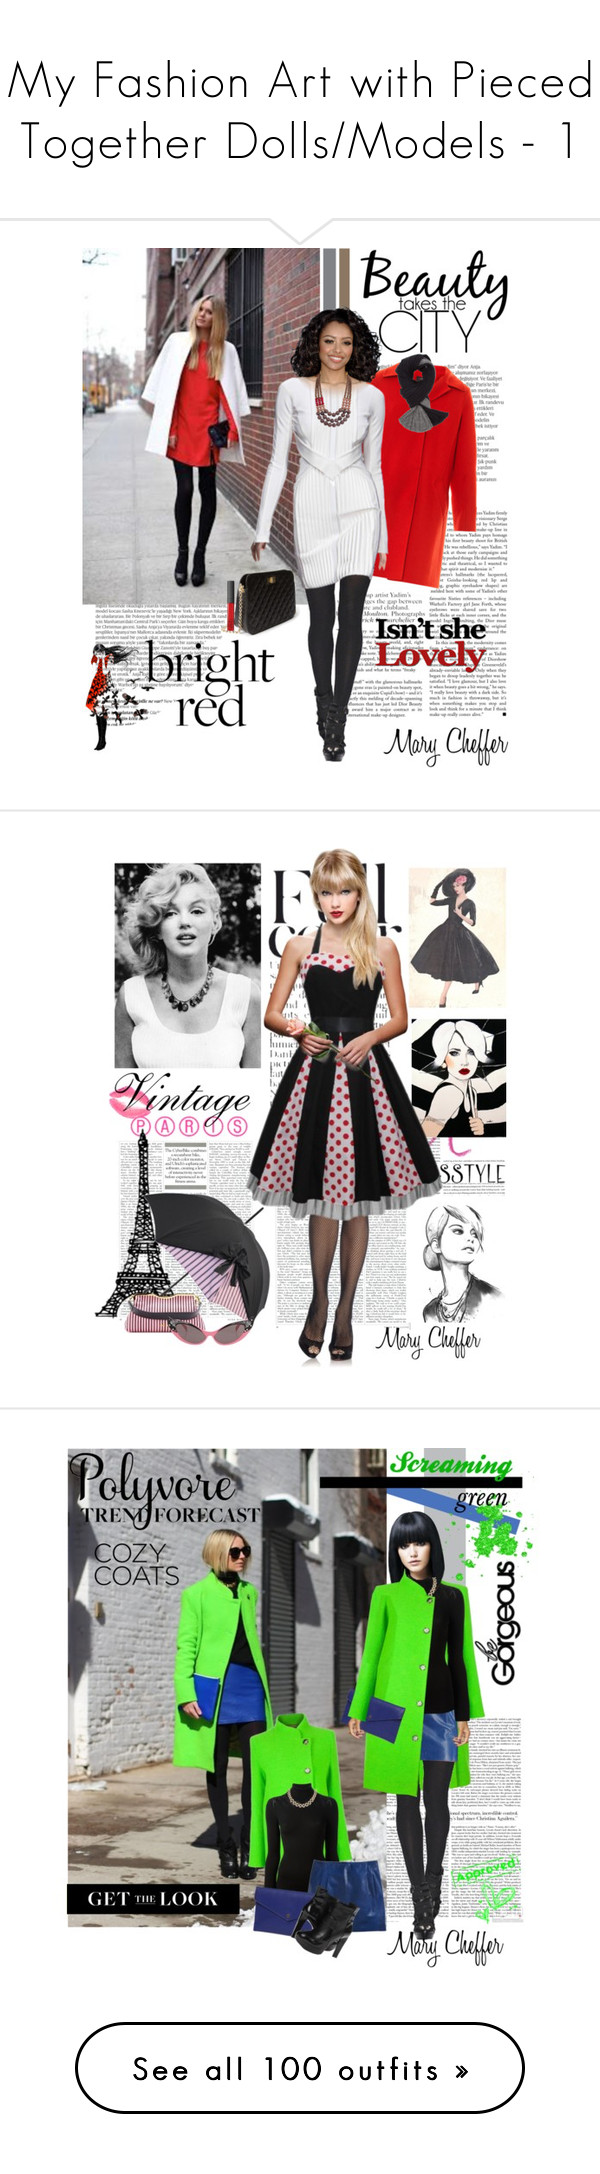 """My Fashion Art with Pieced Together Dolls/Models - 1"" by mcheffer ❤ liked on Polyvore featuring Libertine, Balmain, Weekend Max Mara, David Koma, Forever 21, David Aubrey, Alexander Wang, NARS Cosmetics, Chantal Thomass and Miu Miu"